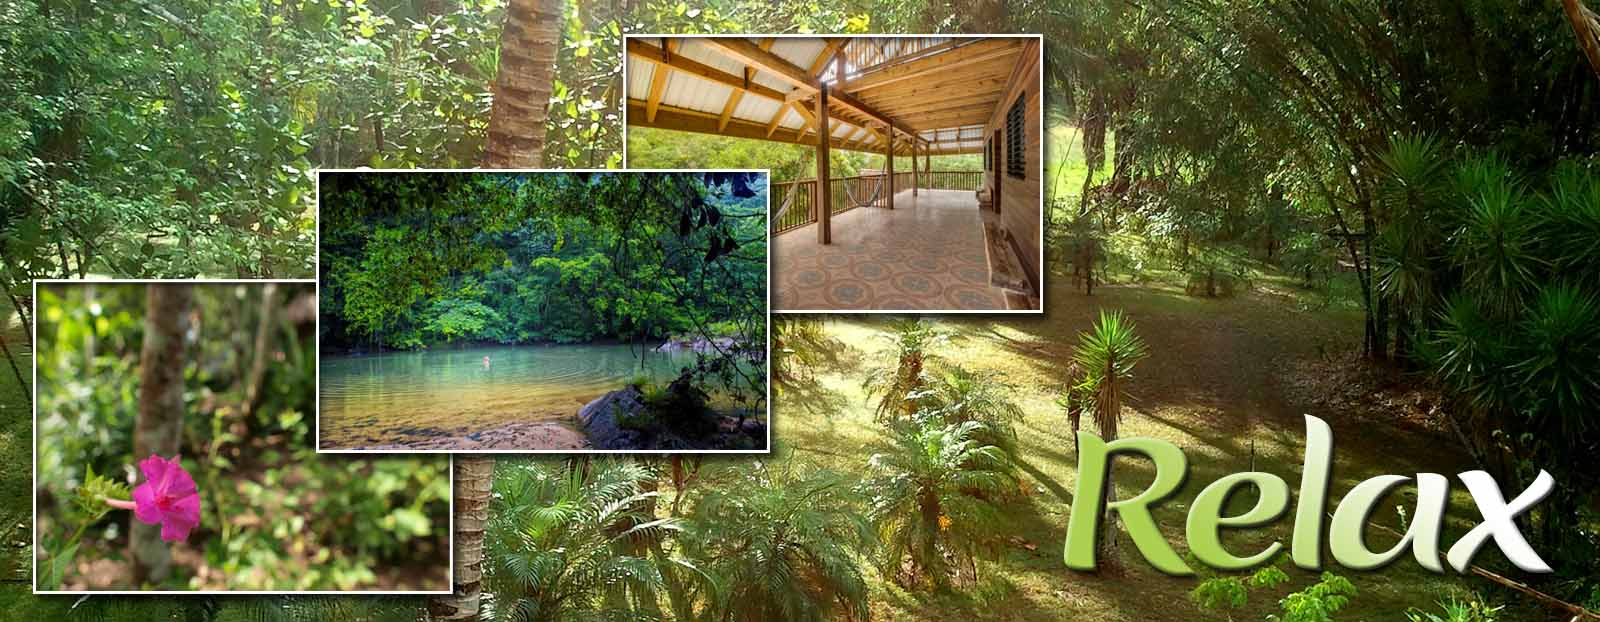 Tropical Wings The Cayo District, Martz Farm Treehouses & Cabanas